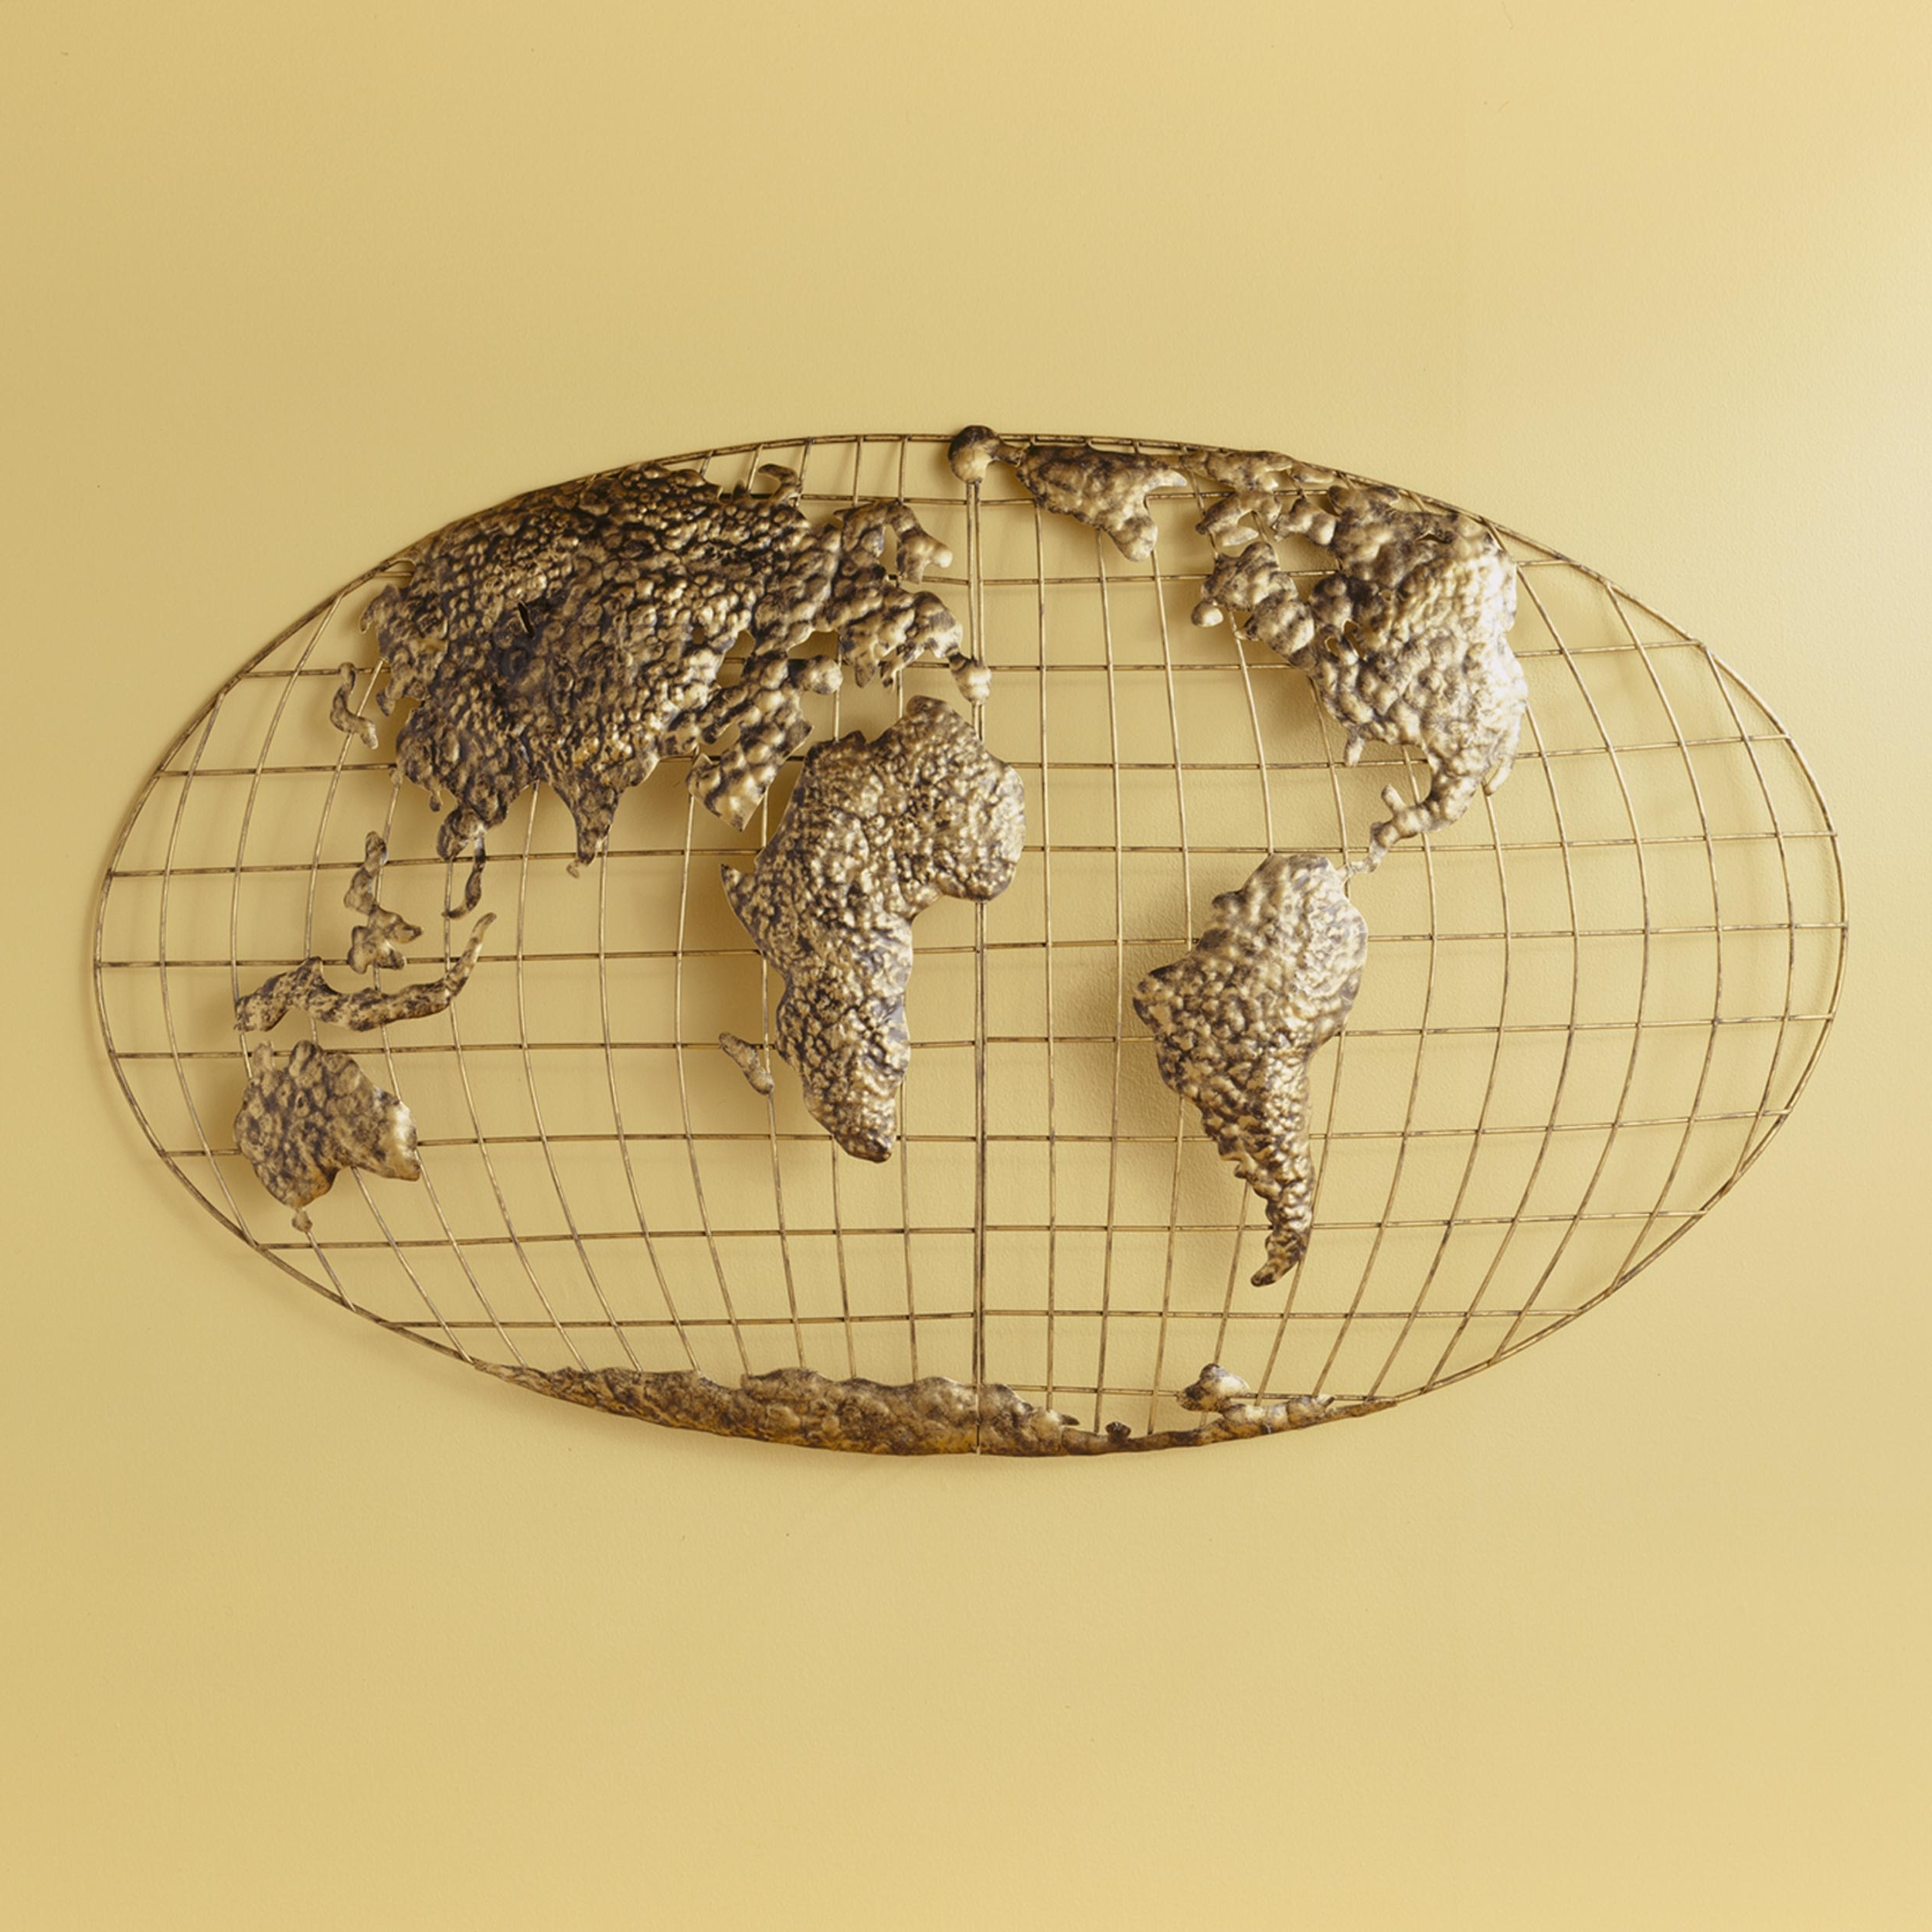 World Map For Wall Art Intended For Most Up To Date Amazon: Sei Southern Enterprises Iron World Map Wall Art: Home (View 3 of 15)